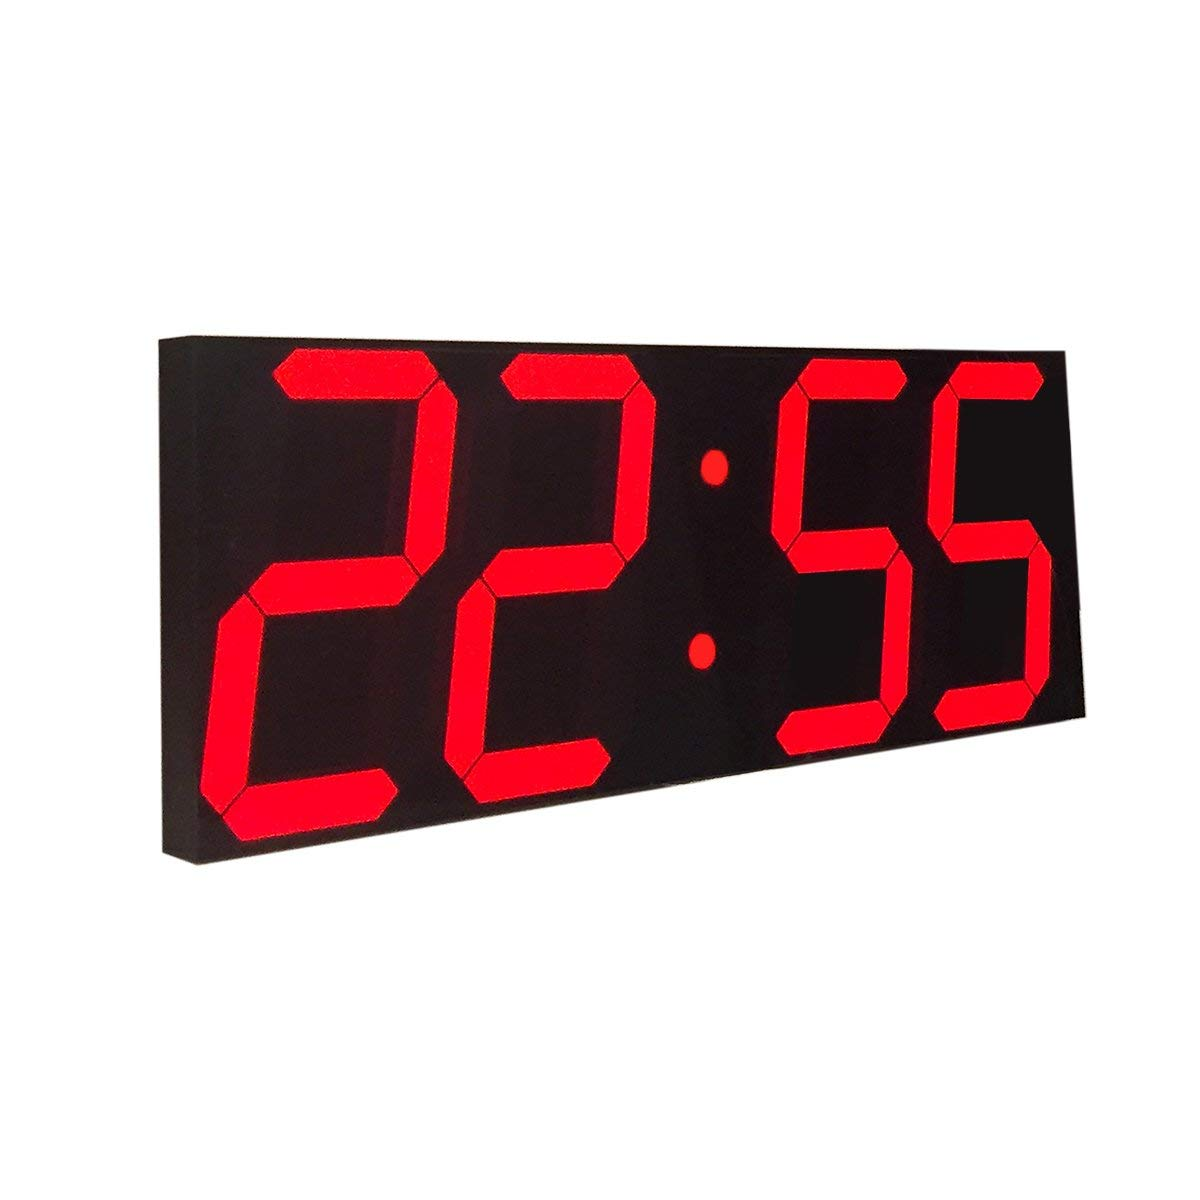 Goetland 17-3/5 inches Jumbo Wall Clock LED Digital Multi Functional Remote Control Countdown Timer Temperaturer, Red Digital on Black Background by Goetland